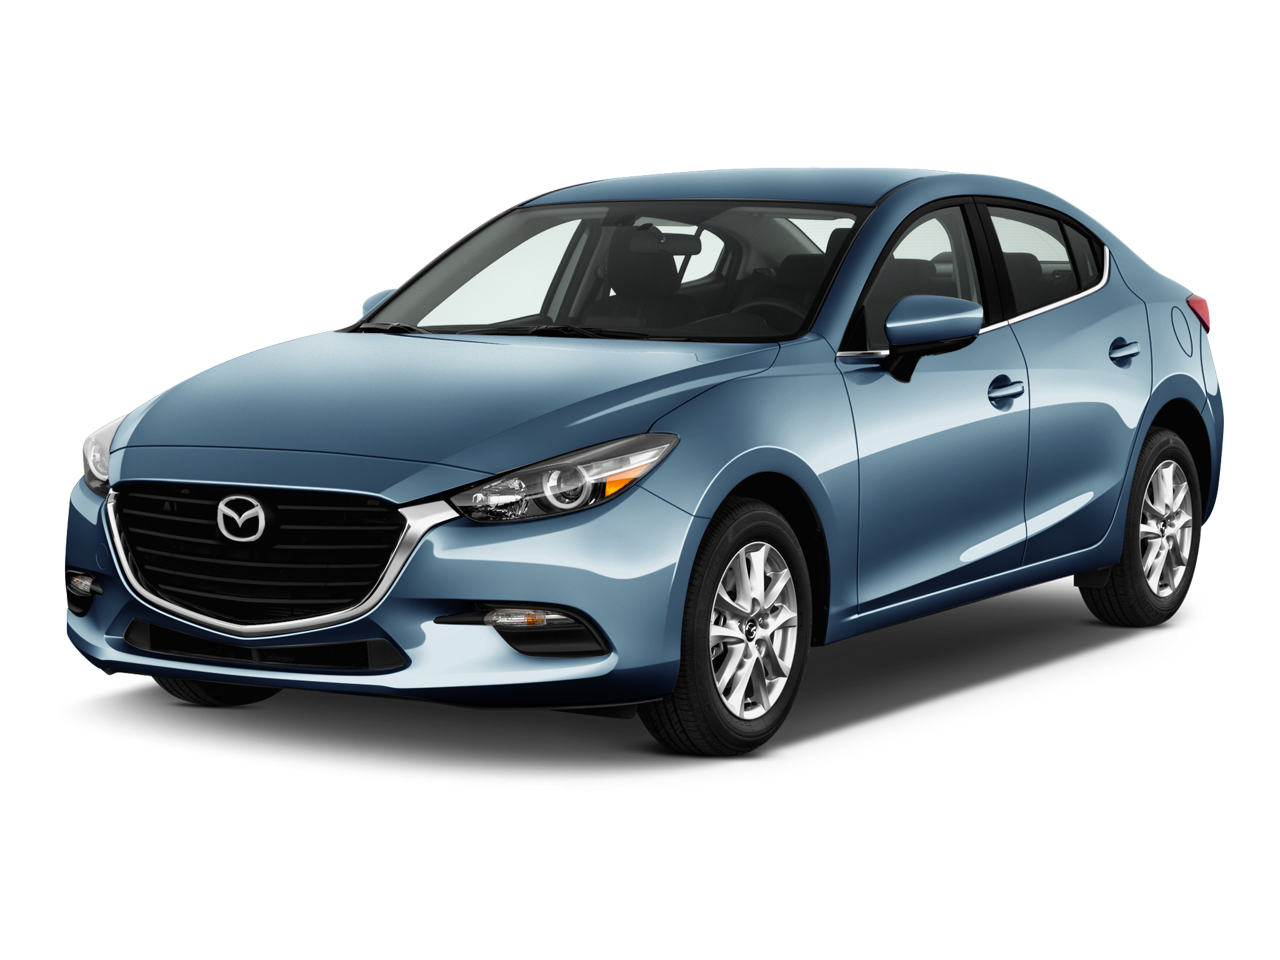 Mazda 3 Owners Manual: Recording of Vehicle Data